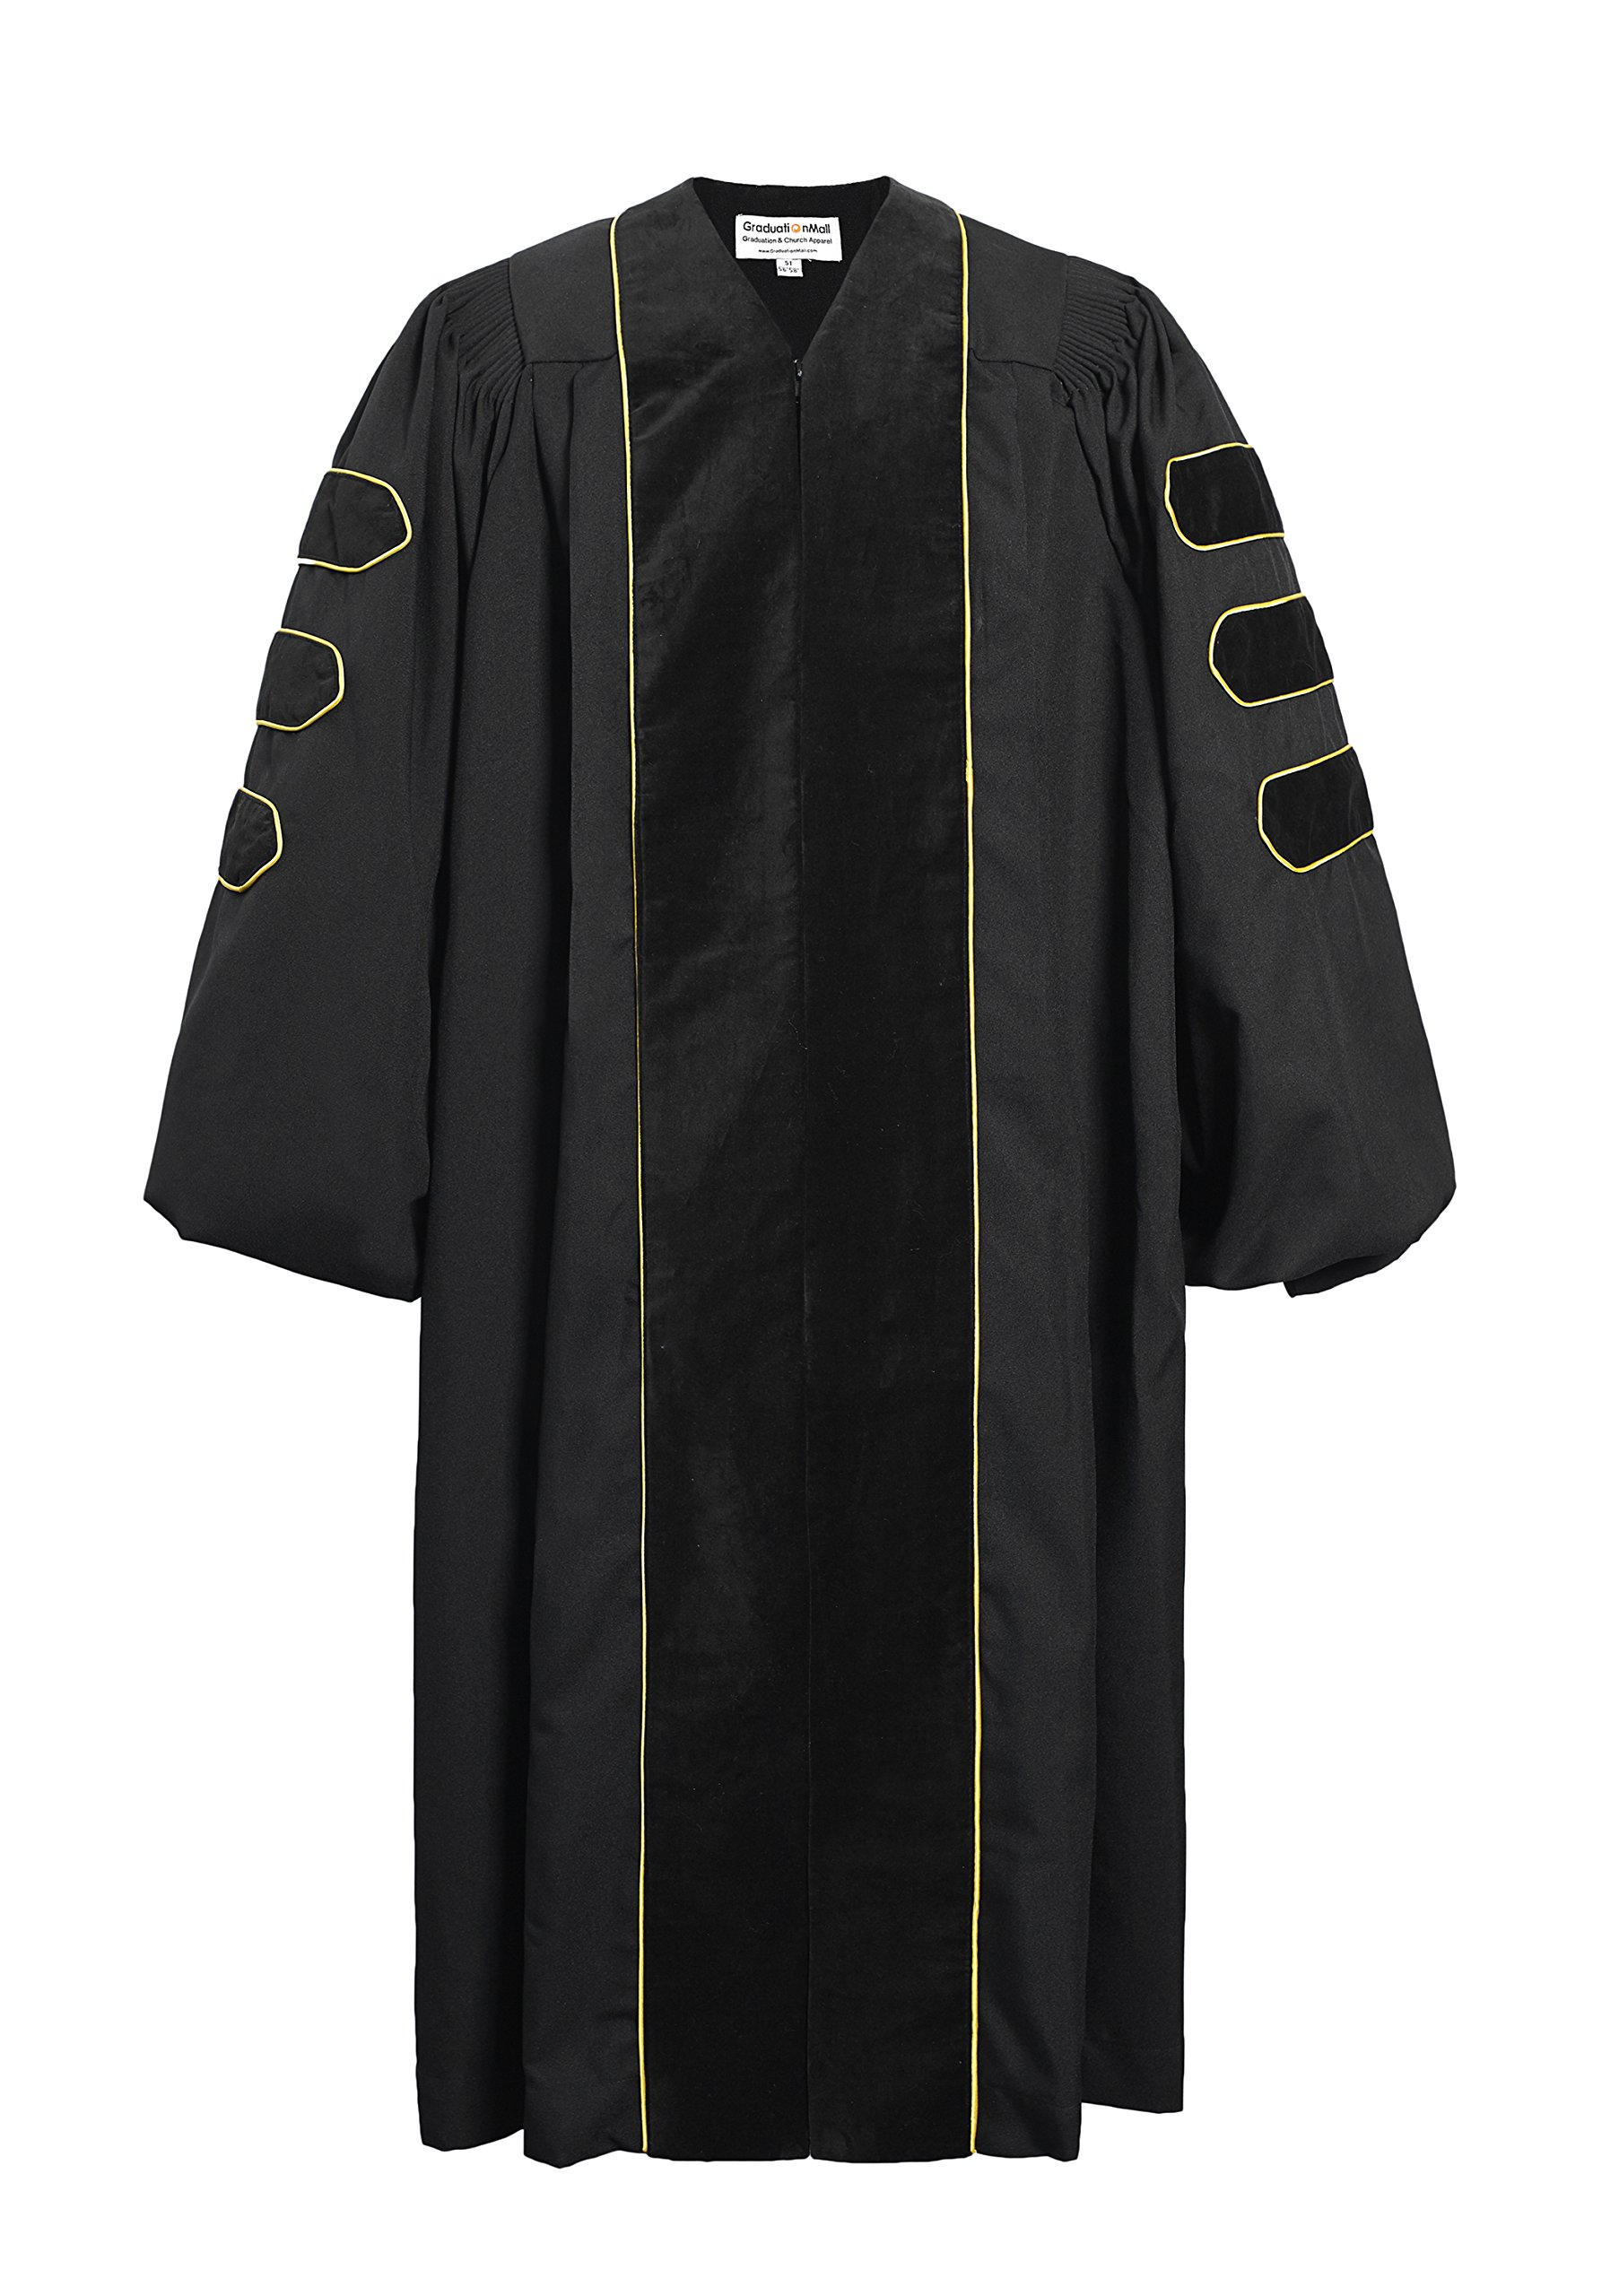 GraduationMall Deluxe Doctoral Graduation Gown Black Velvet with Gold Piping for Faculty and Professor 54(5'9''-5'11'')